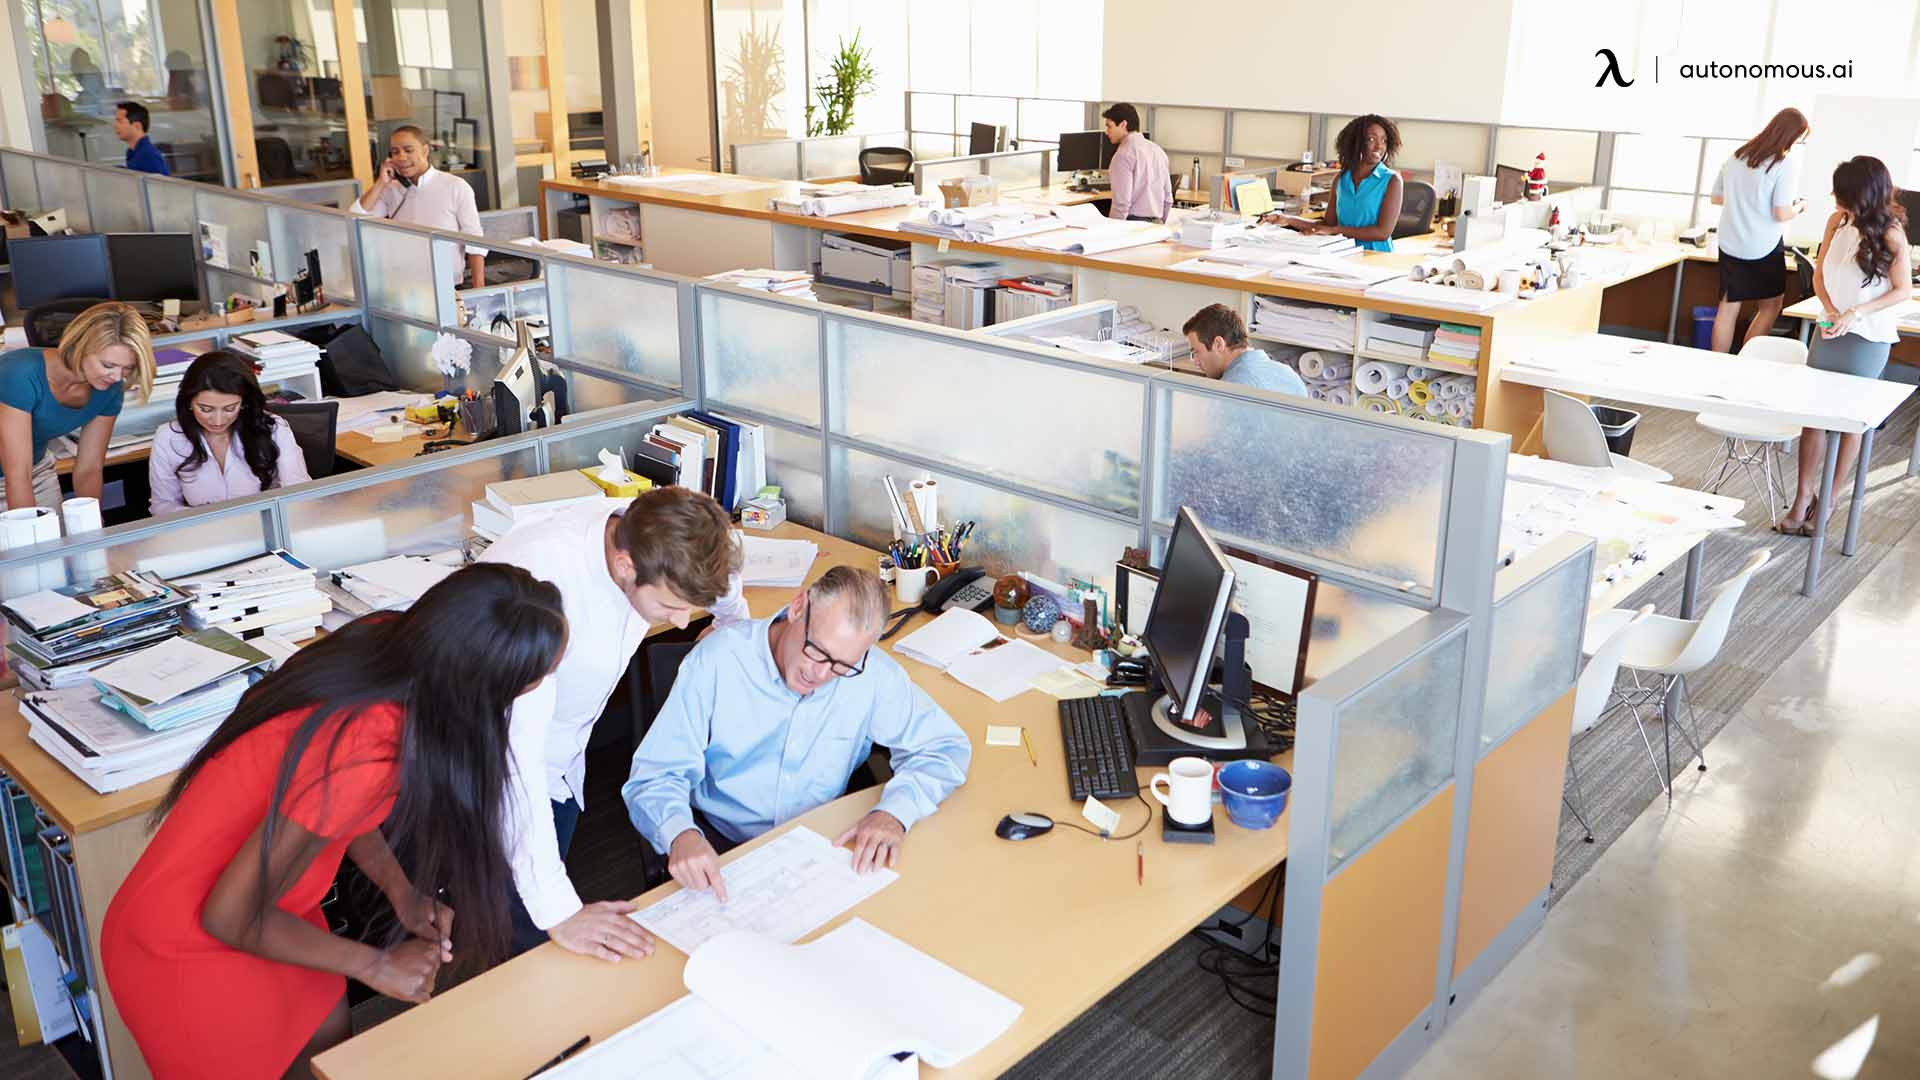 How to Create Privacy in an Open Office